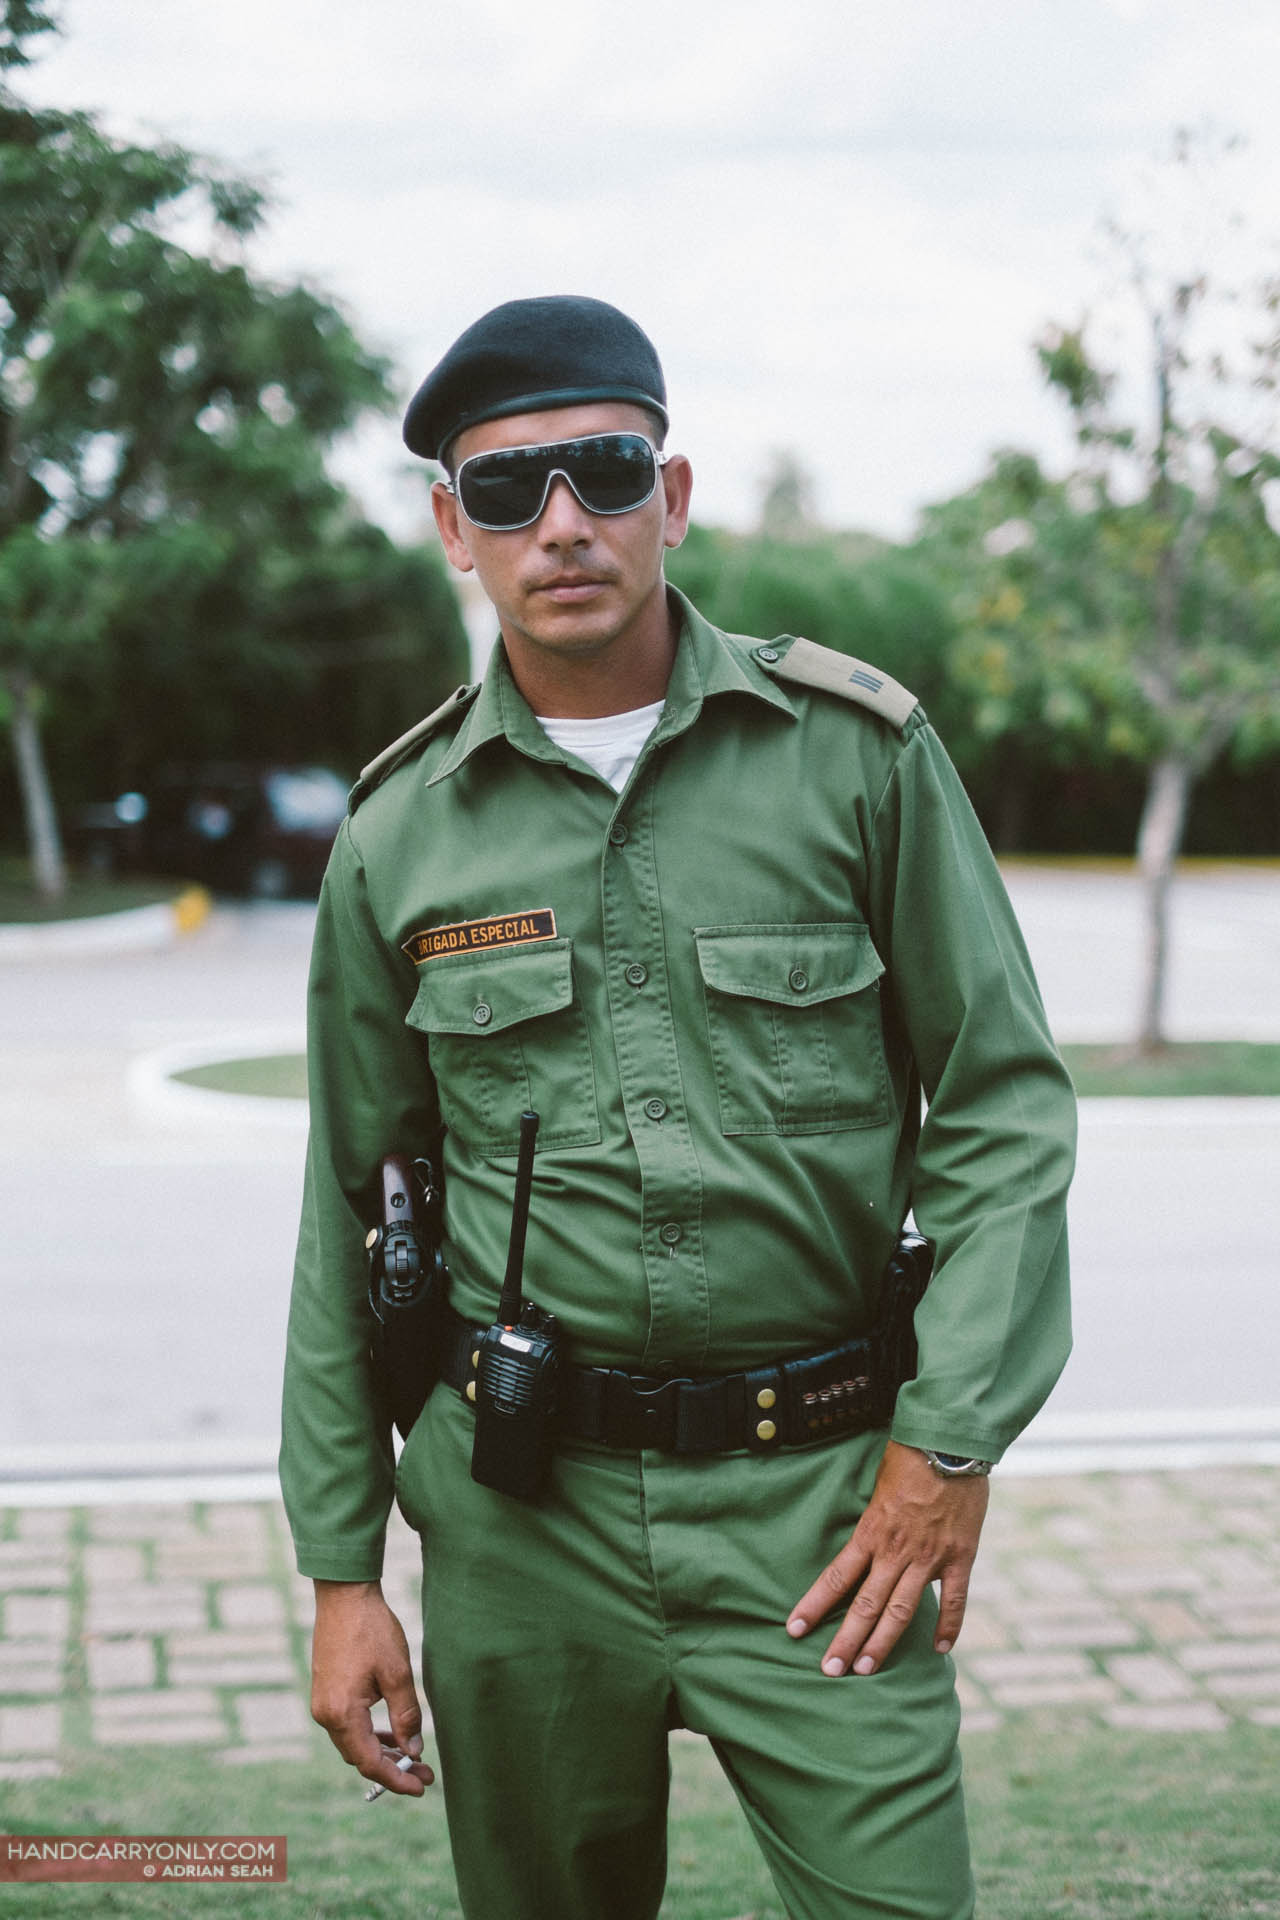 cuban police officer in uniform